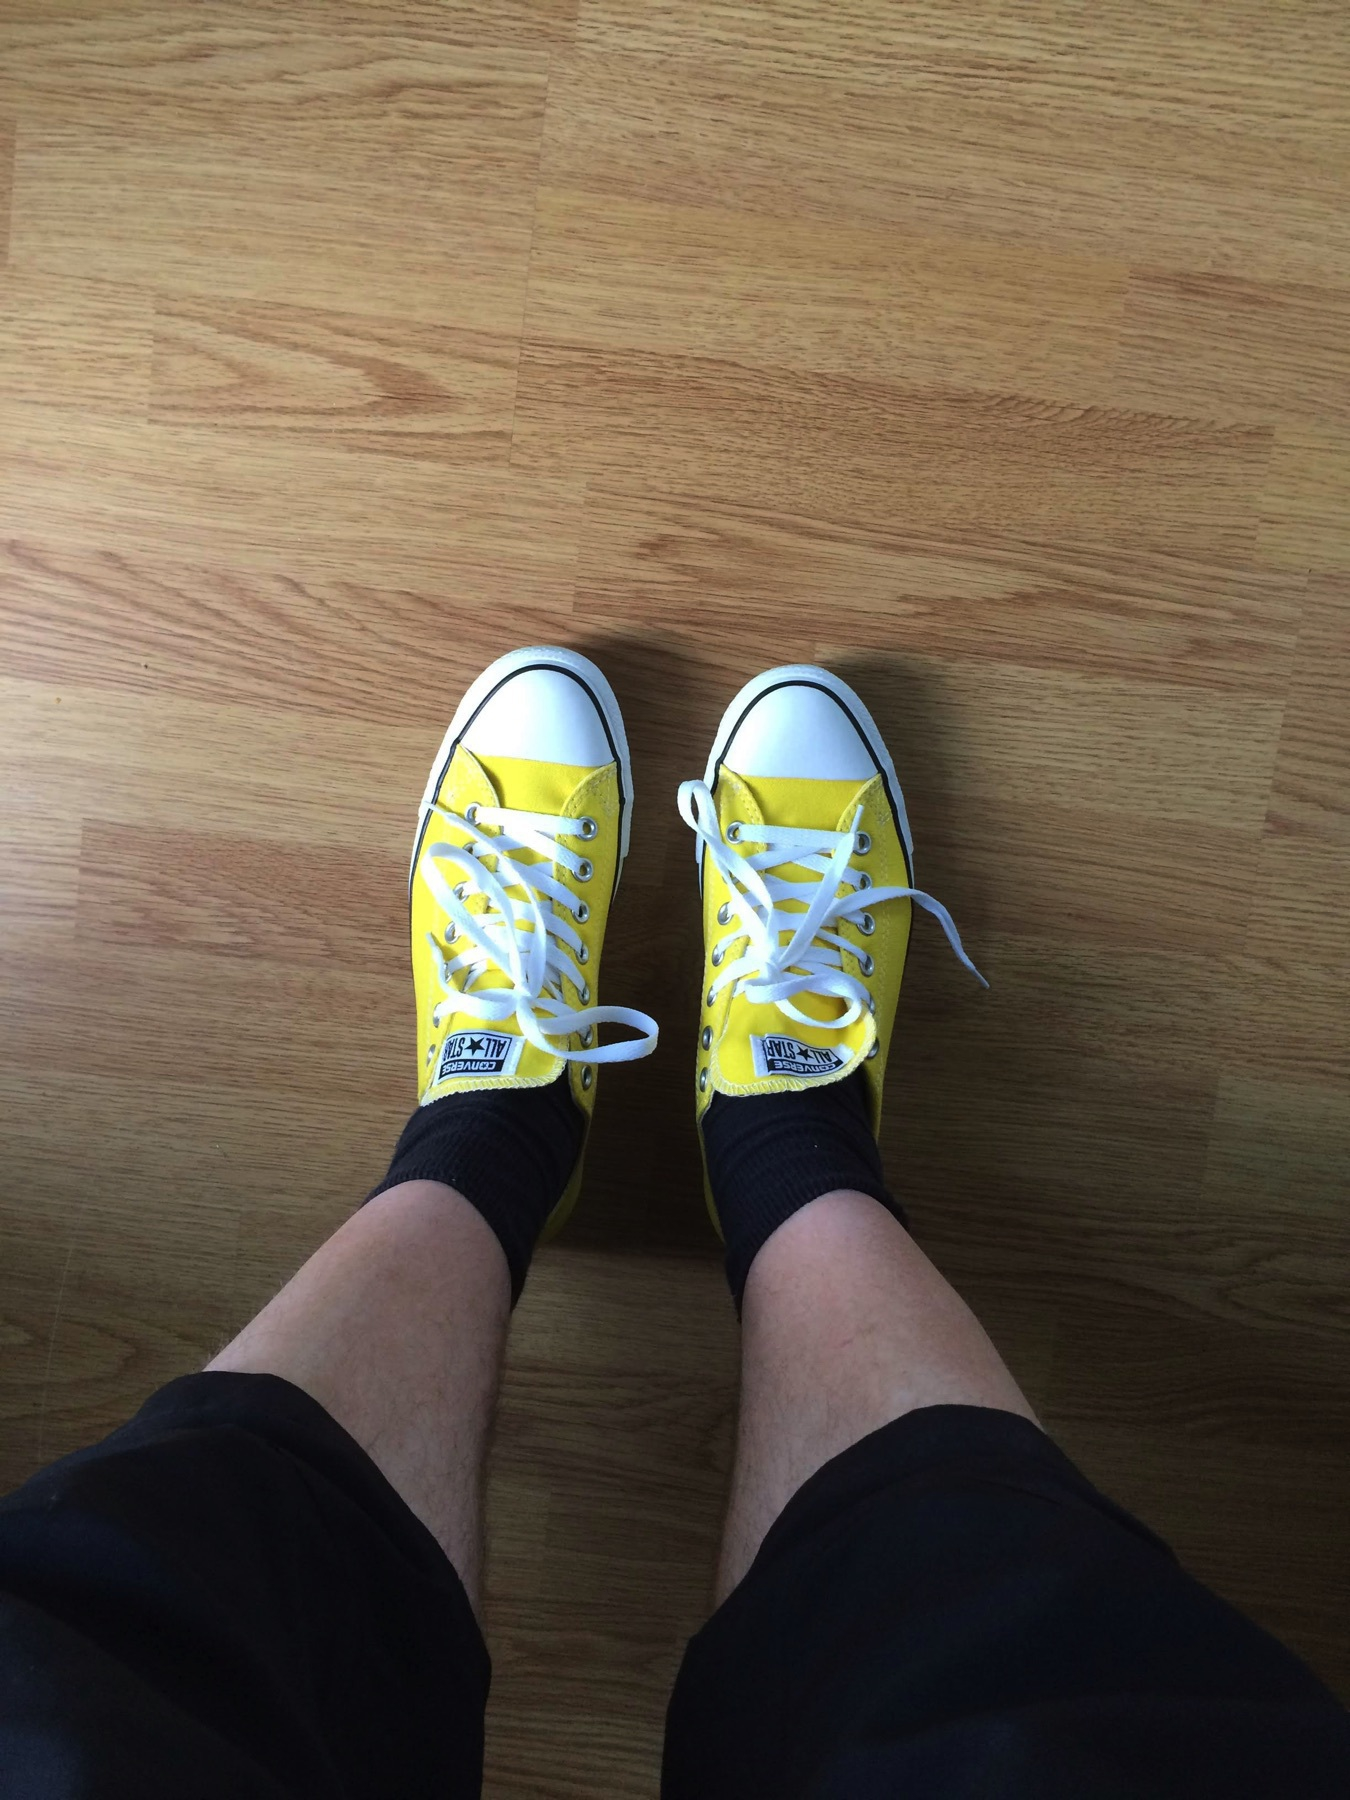 yellow converse all stars, floor, two feet